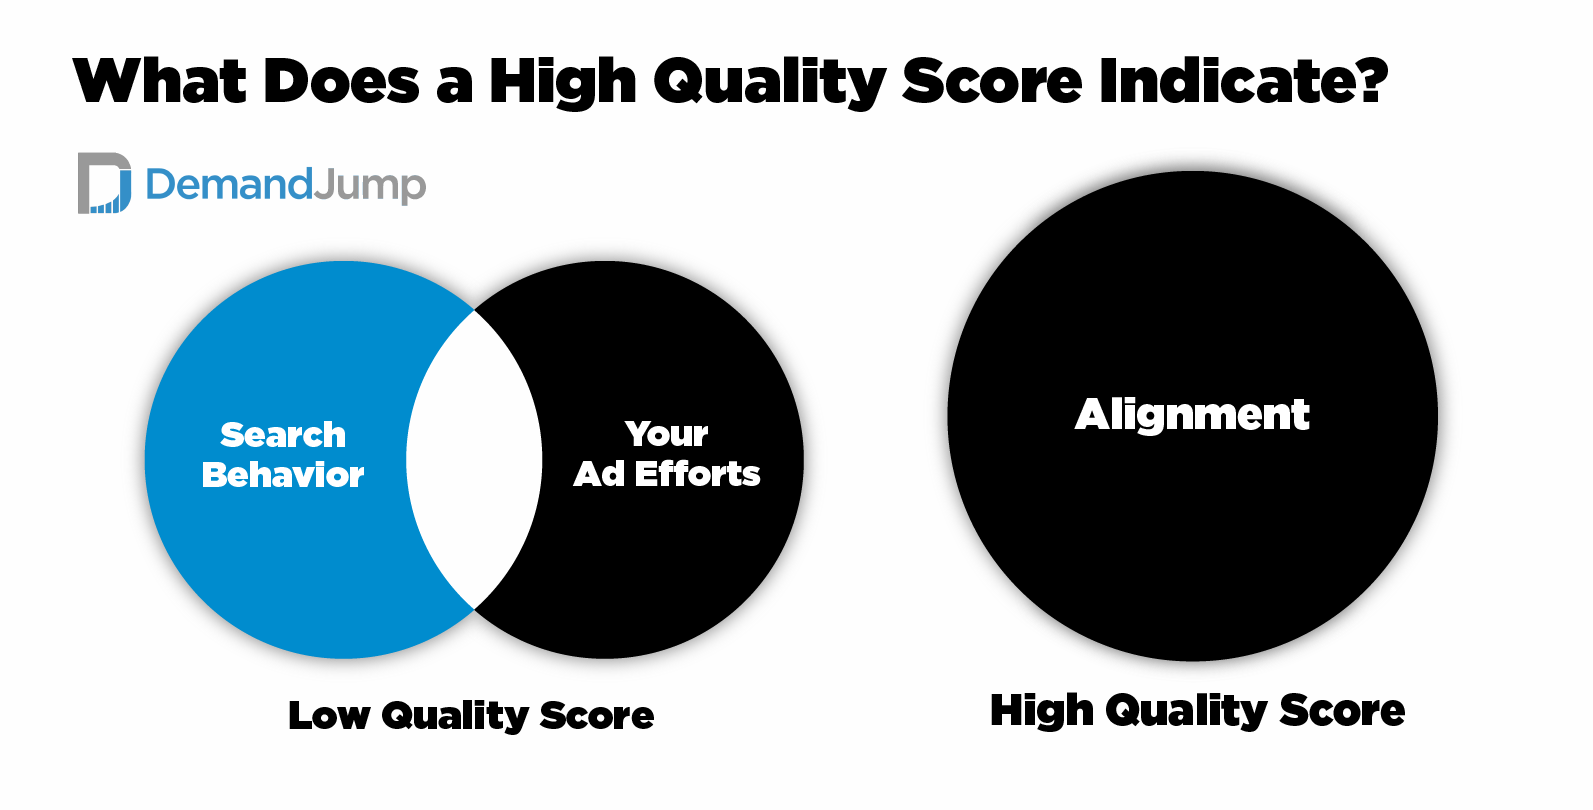 What Does a High Quality Score Indicate?